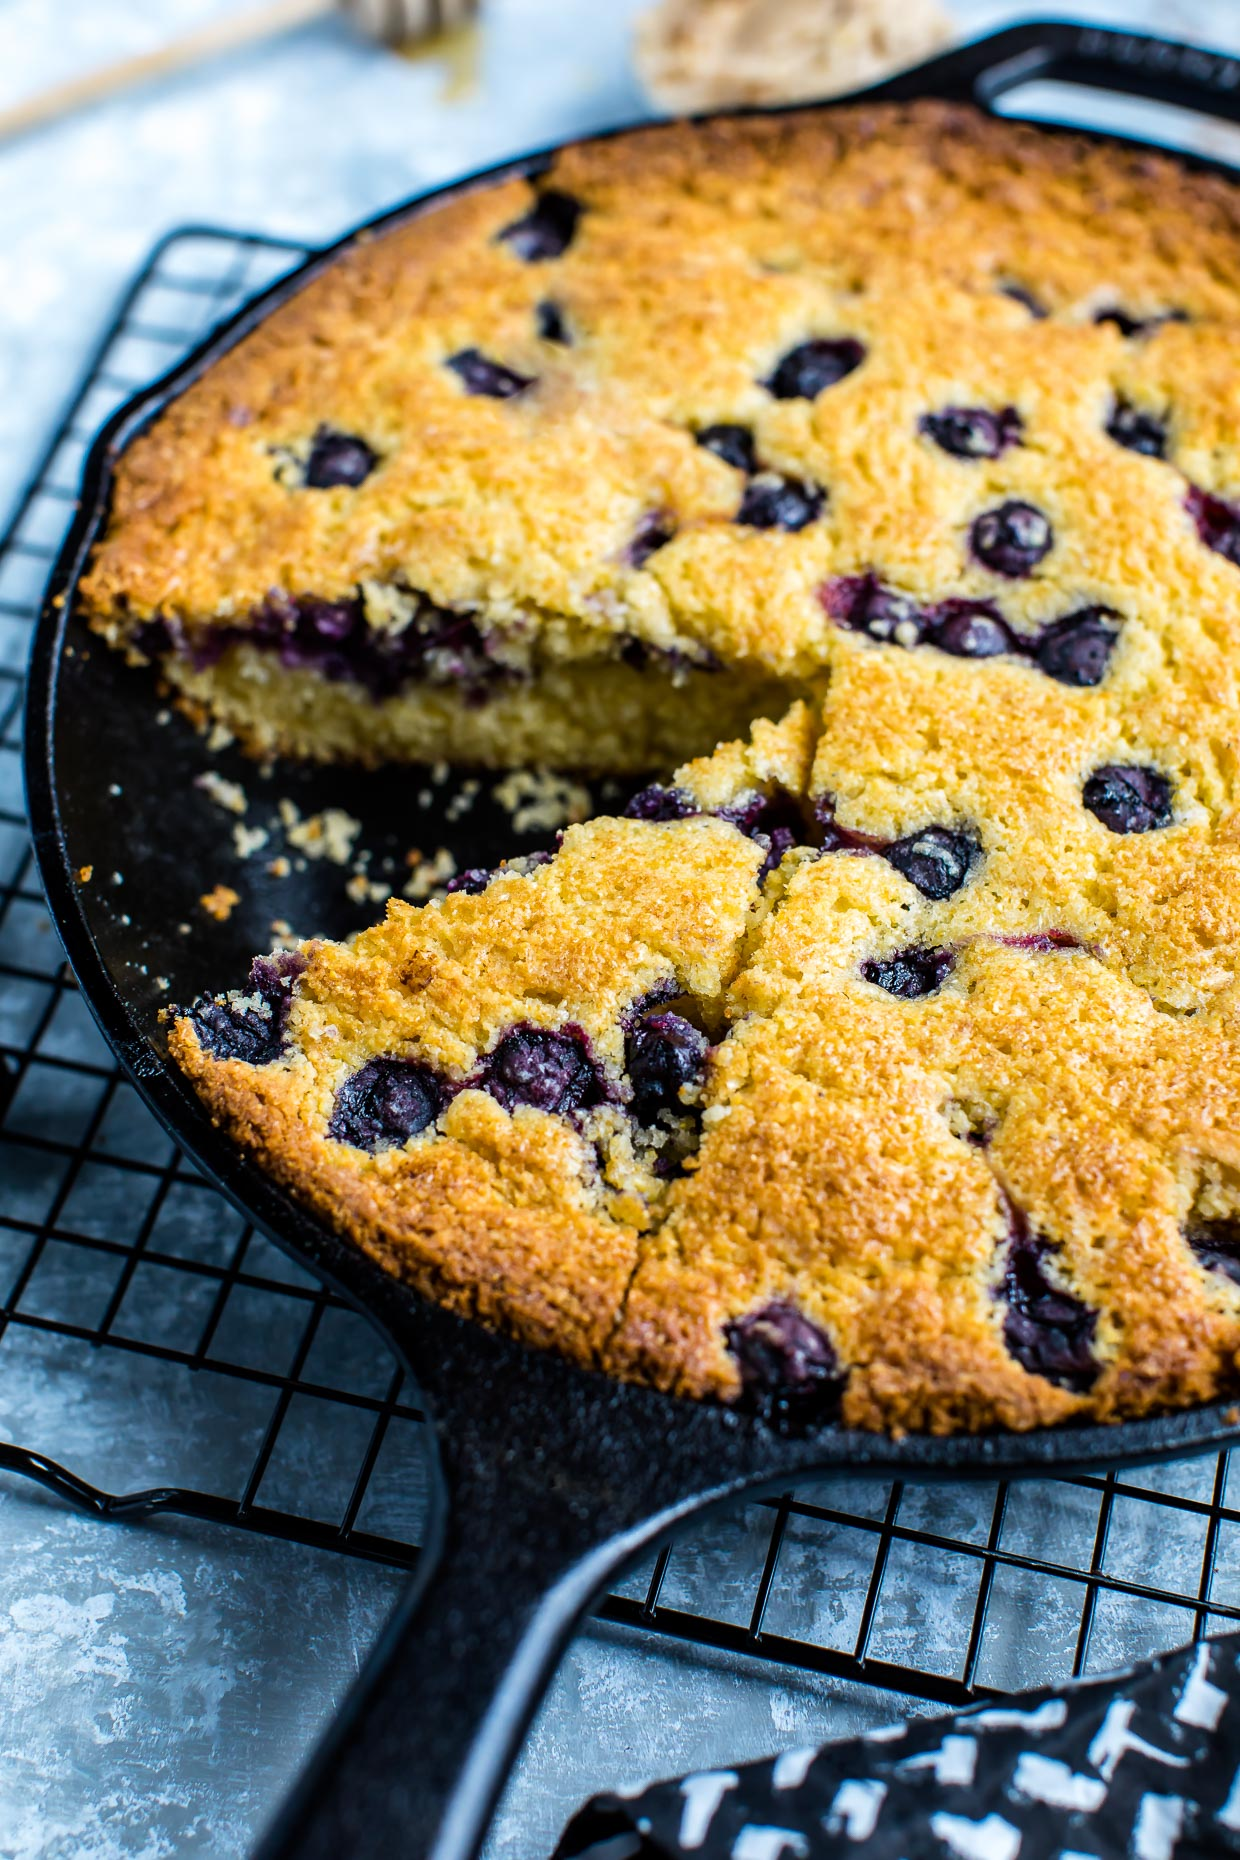 Sweet Blueberry Cornbread Skillet with Cinnamon Honey Butter kissed withsavory sweetness and baked to fluffy perfection. This cast iron skillet cornbread is totally delicious!